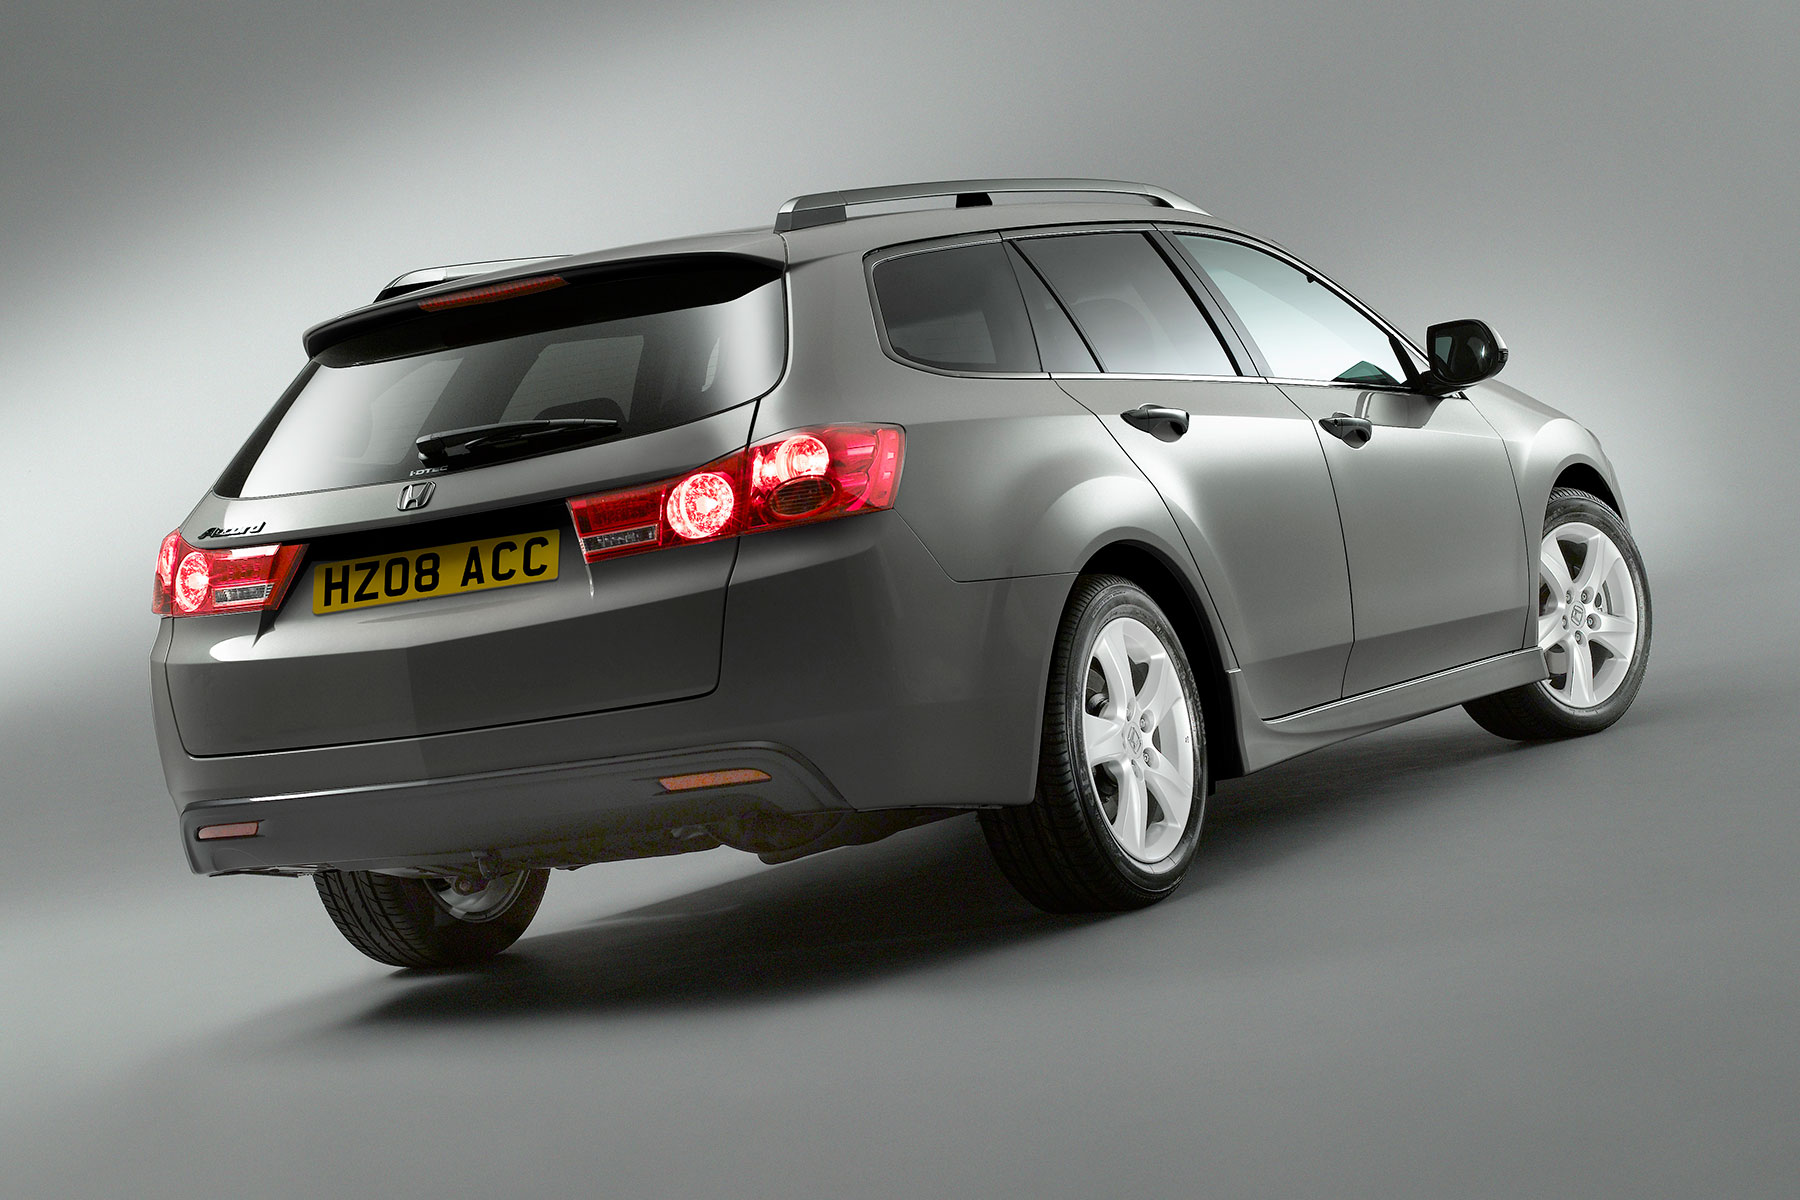 Five Great Used Family Cars For Under £10,000